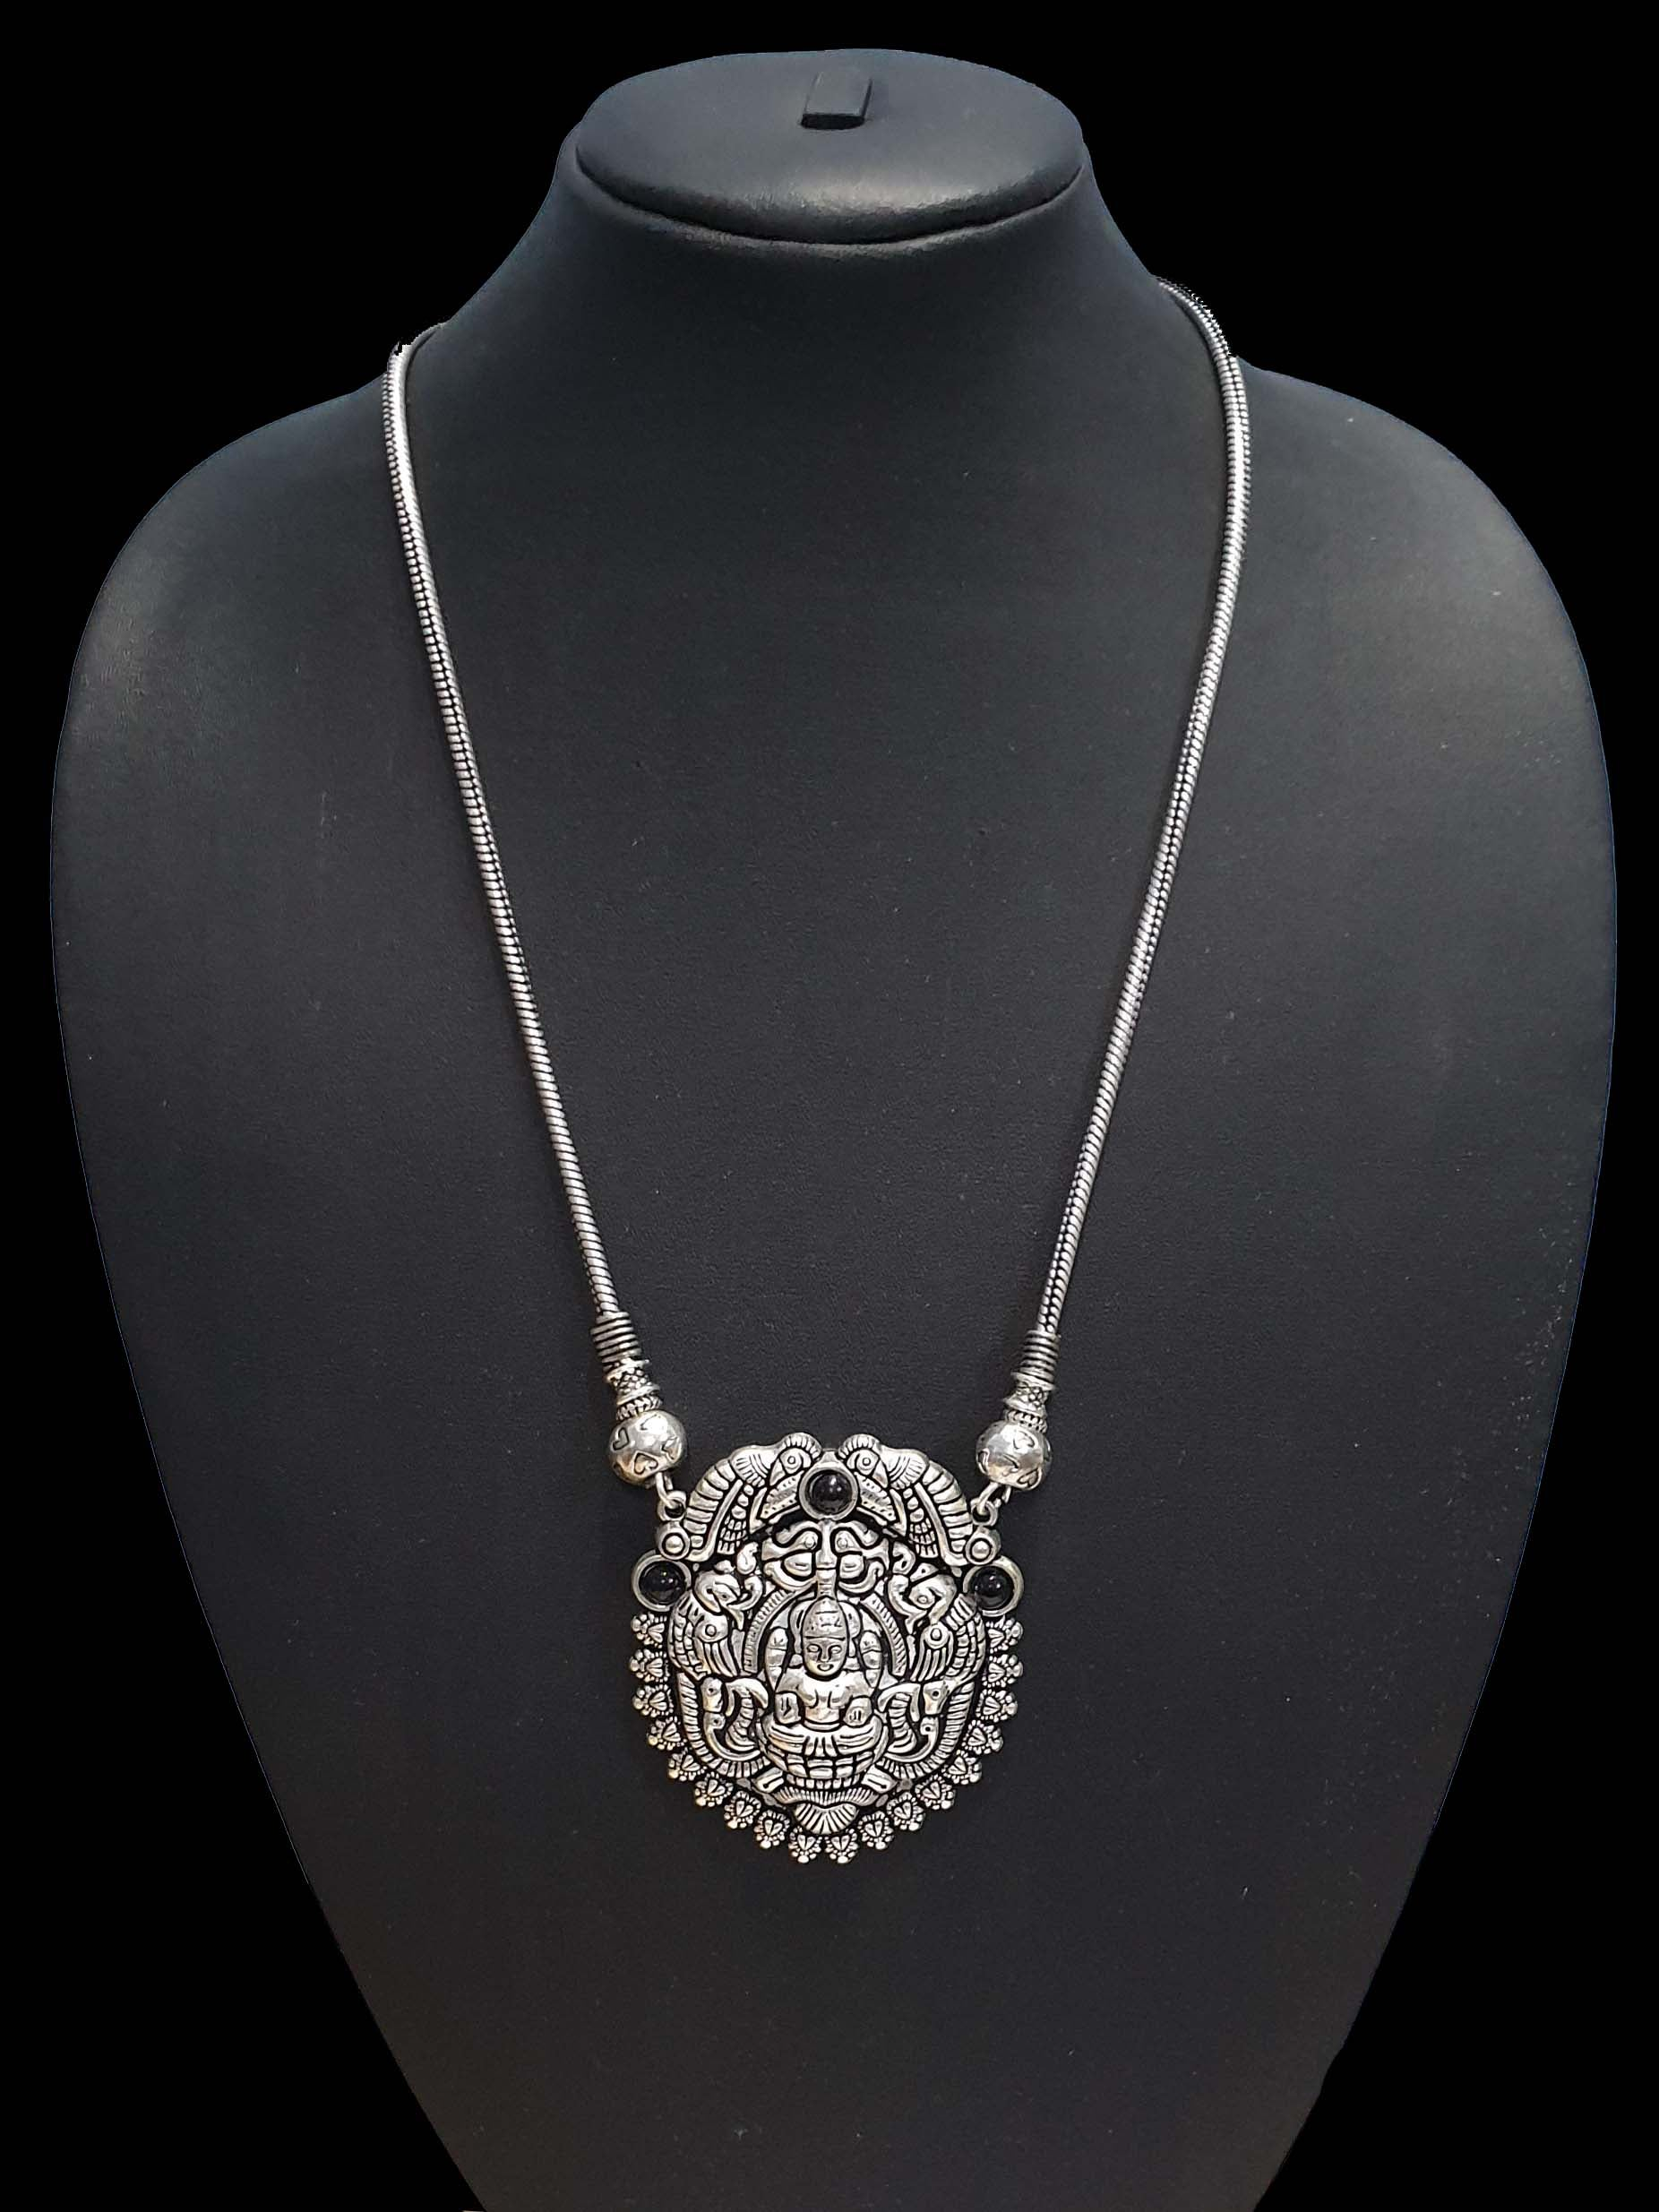 Temple Oxidized Fashion Necklace Base metal German Silver plated long necklace